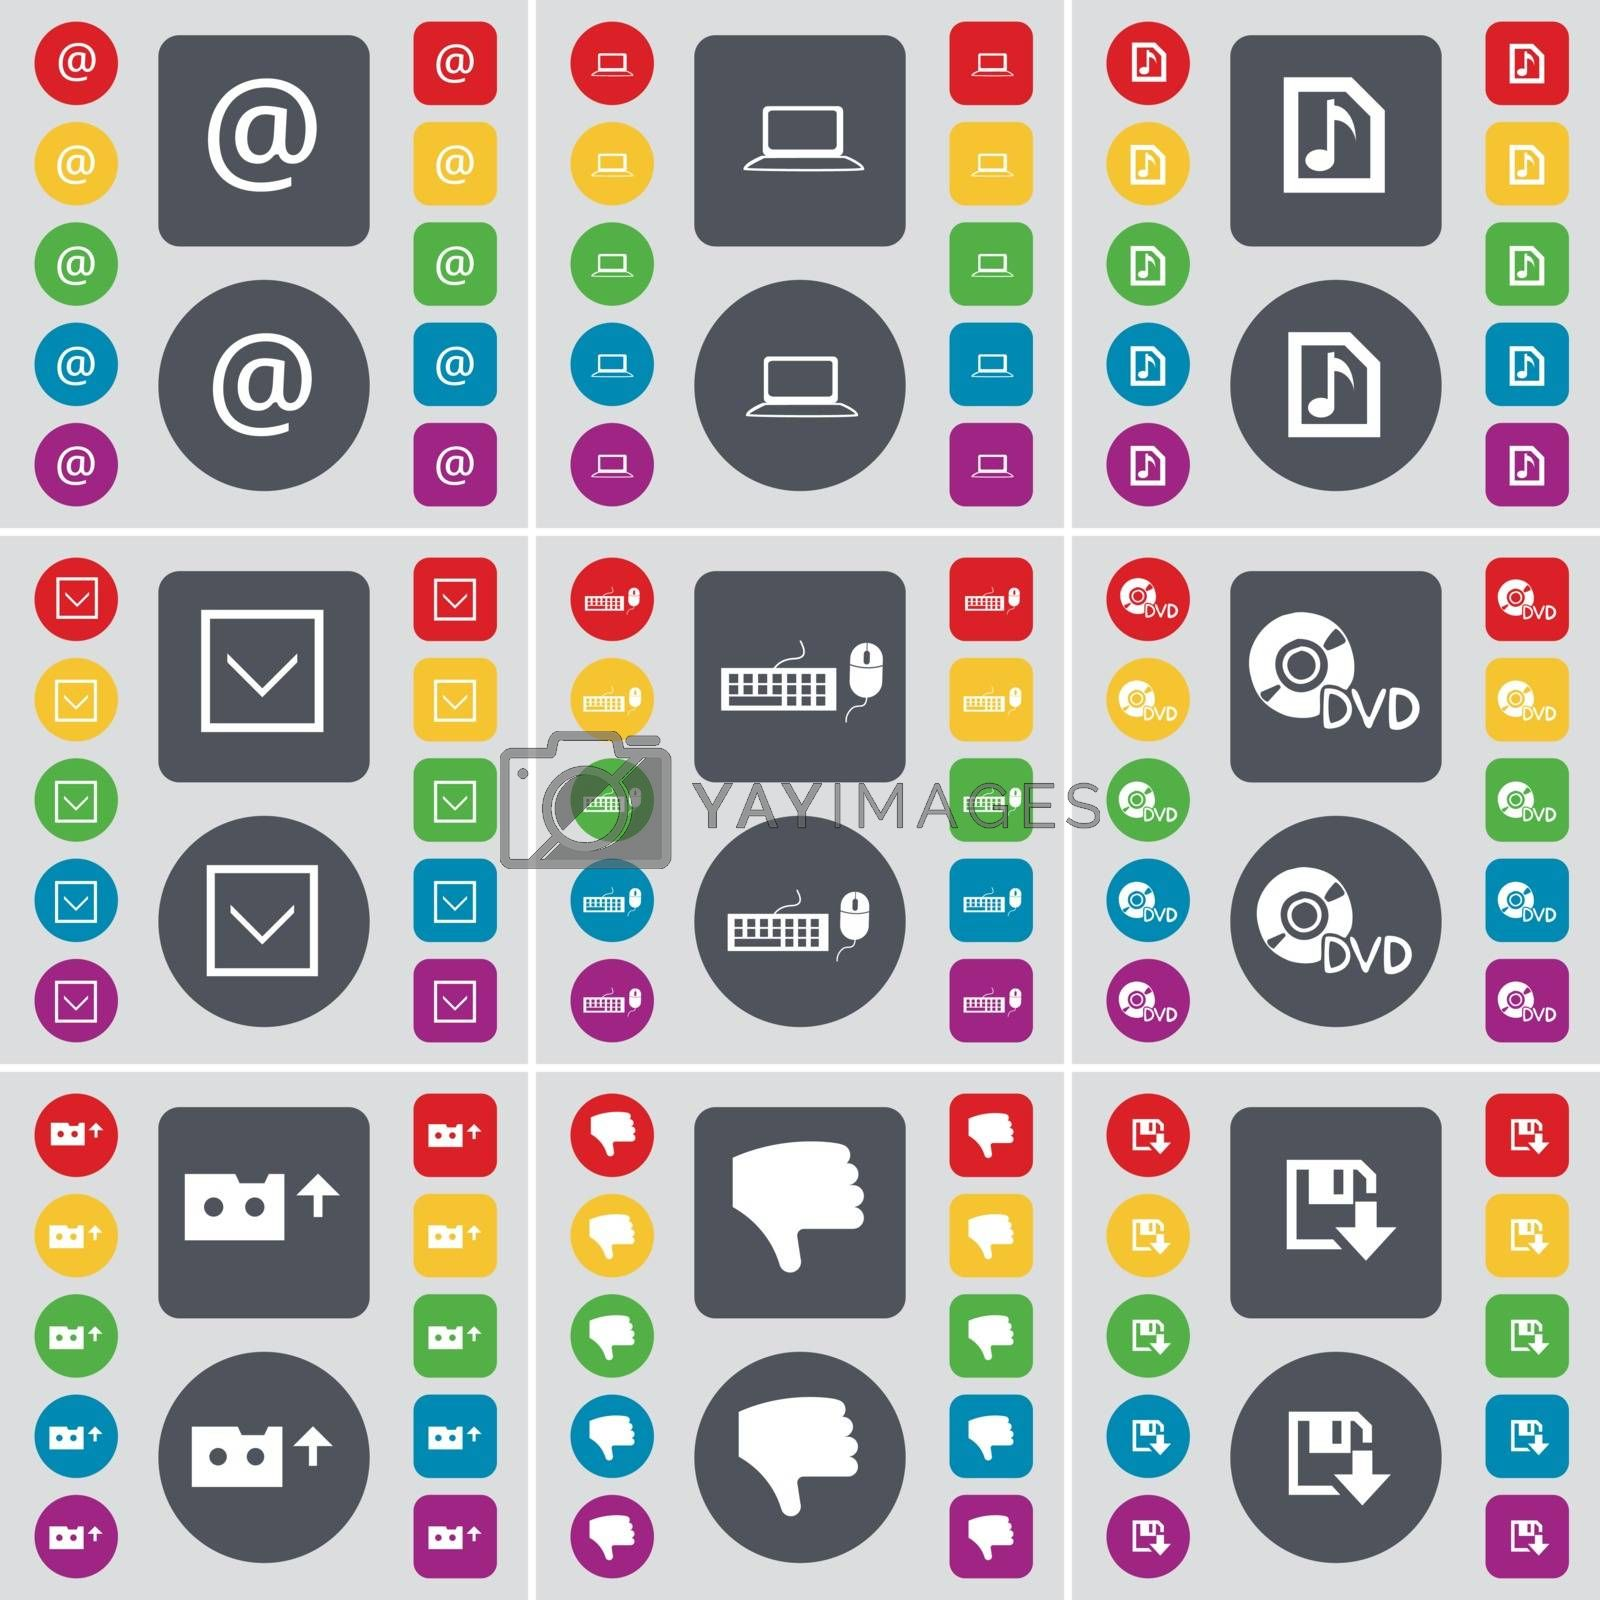 Royalty free image of Mail, Laptop, Music file, Arrow down, Keyboard, DVD, Cassette, Dislike, Floppy icon symbol. A large set of flat, colored buttons for your design. Vector by serhii_lohvyniuk